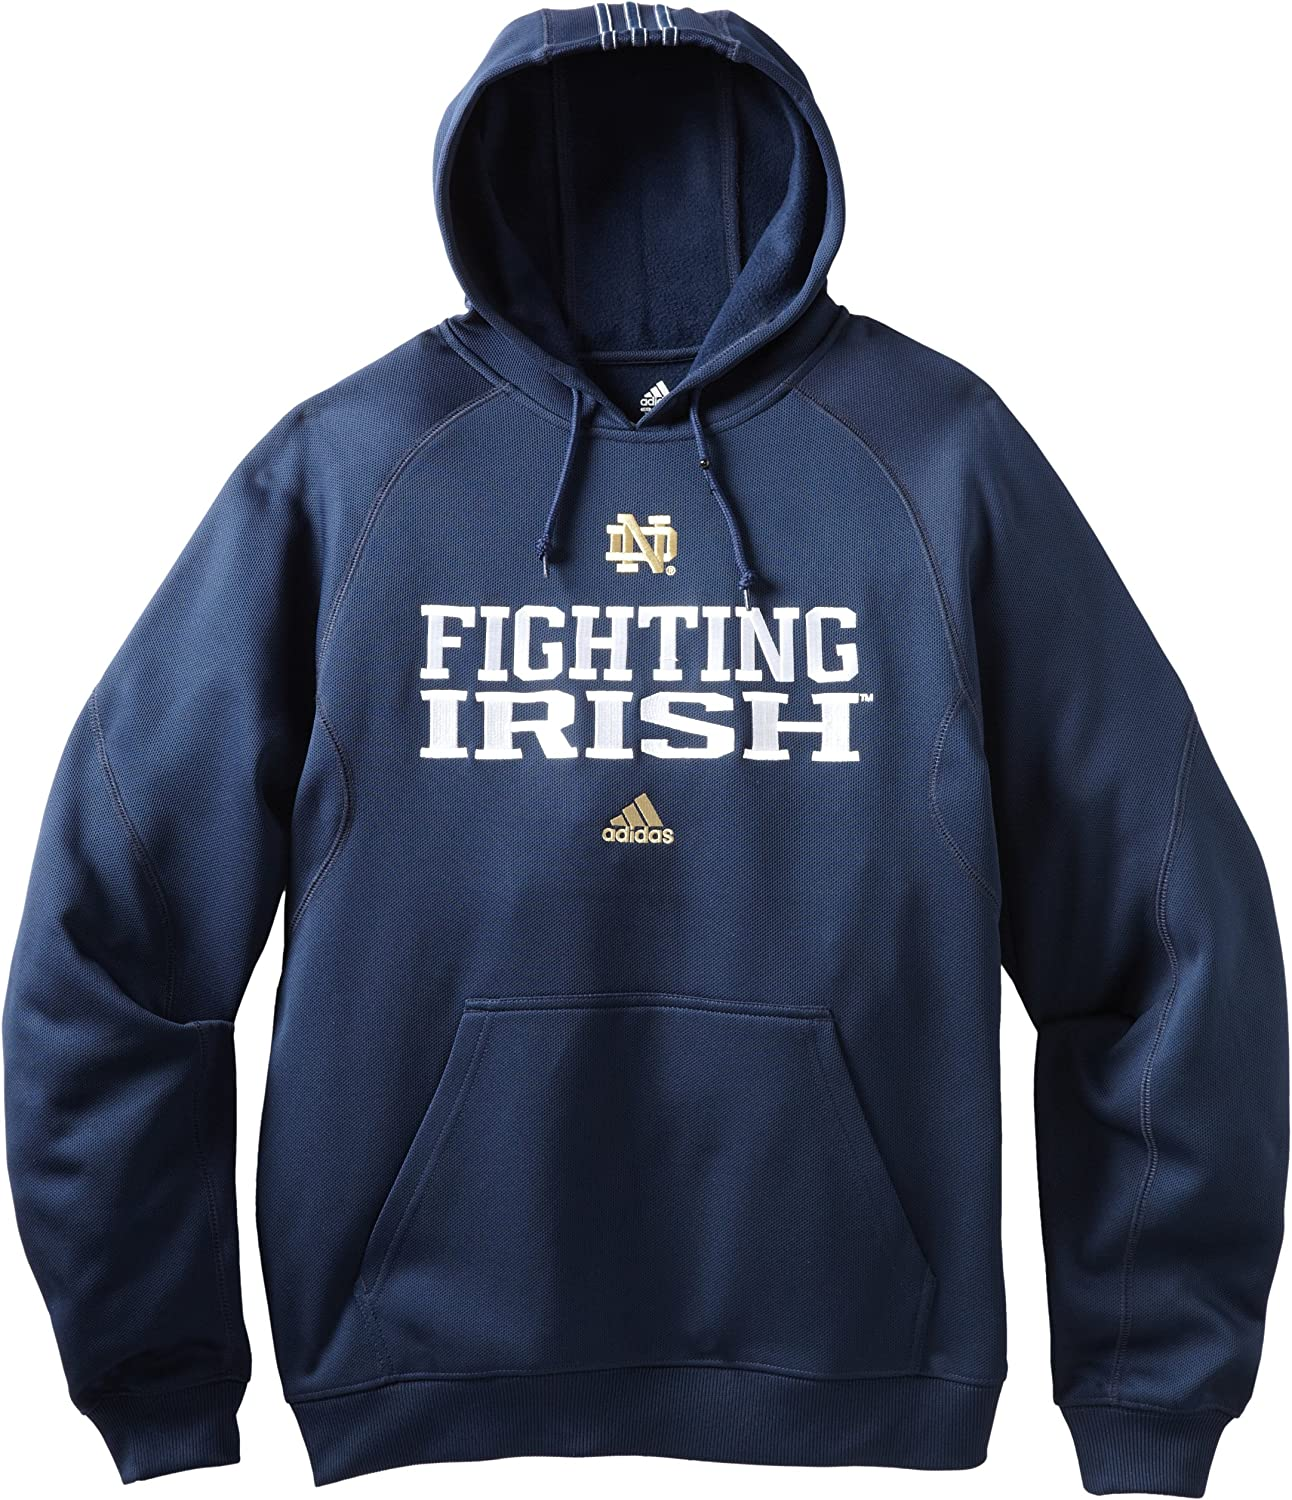 NCAA Notre Dame Fighting Excellence Irish Men's Warm-Up Swagger Ja Over item handling Sideline